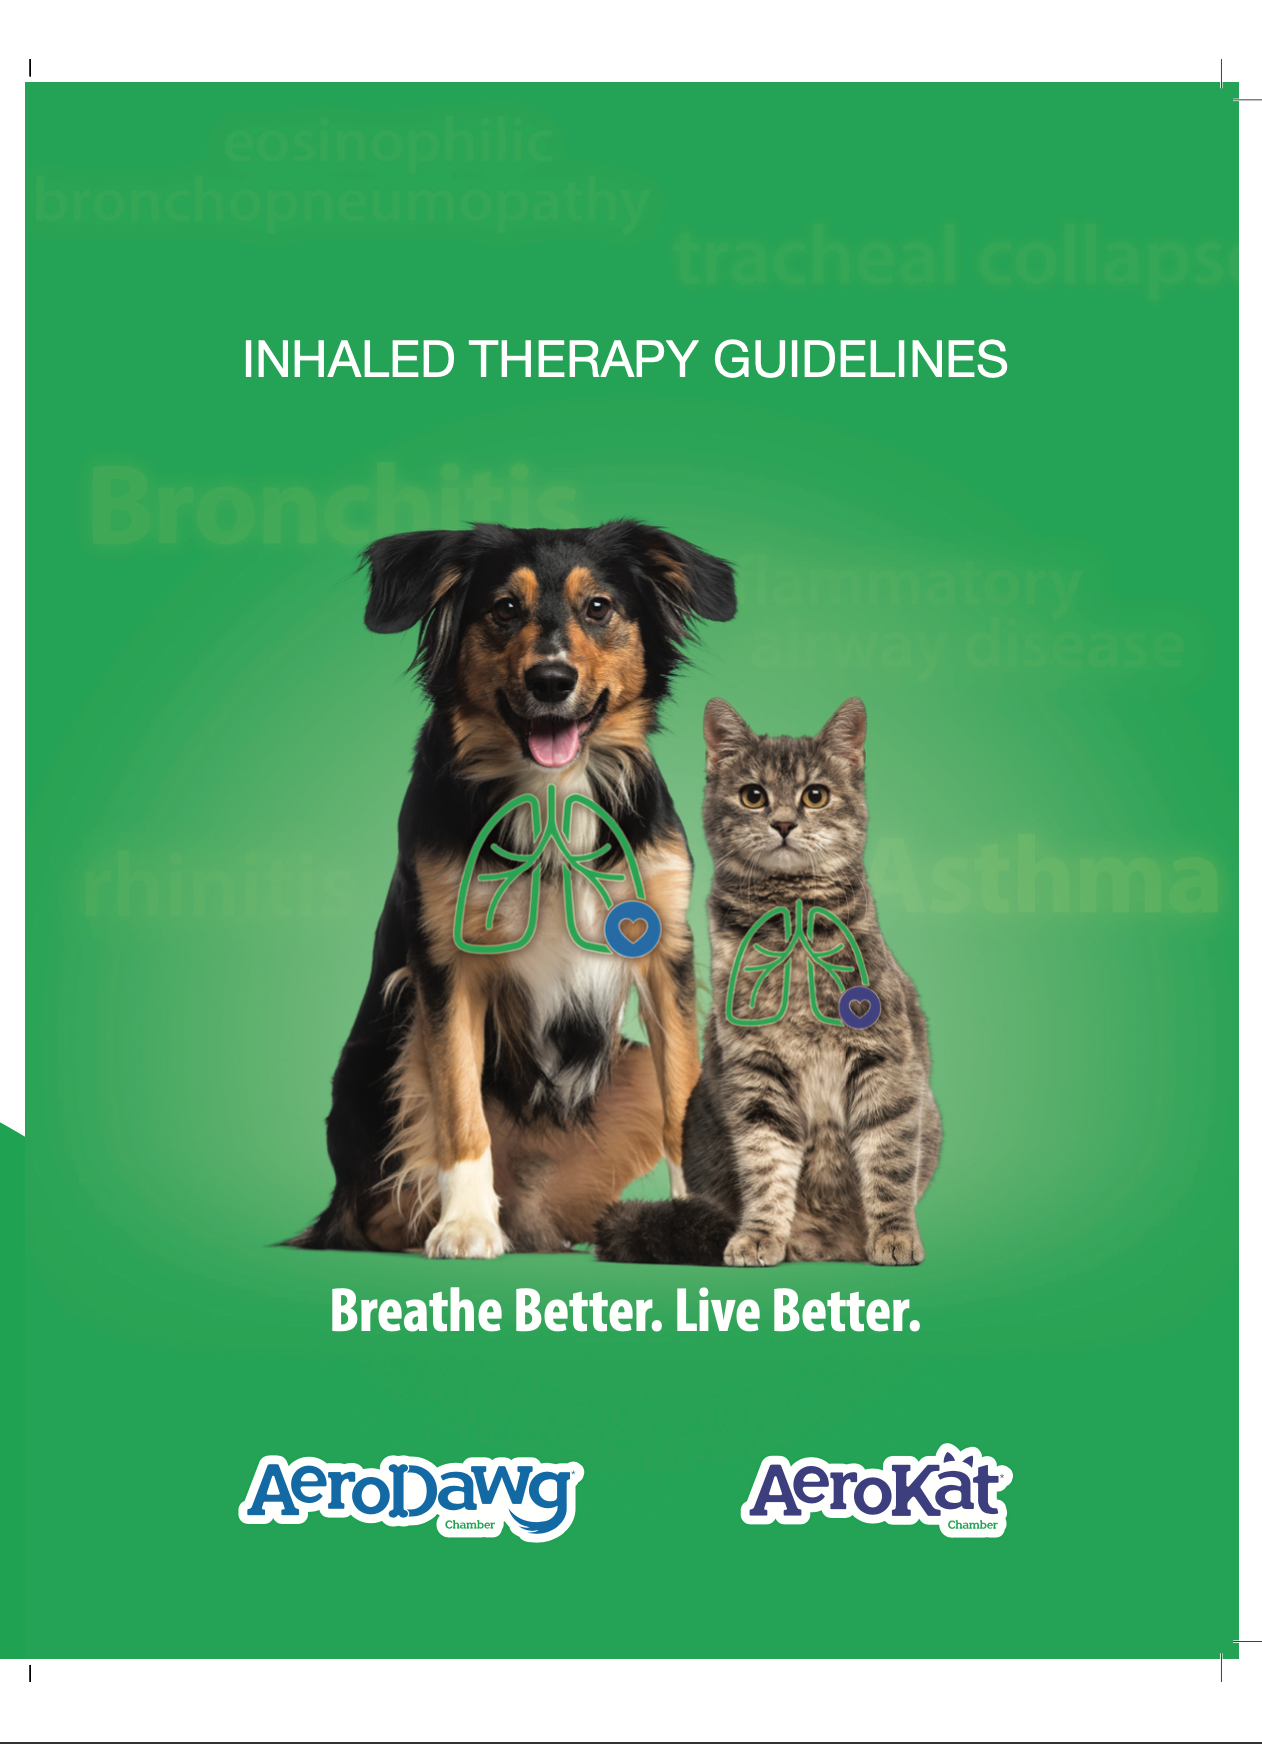 Inhaled therapy guidelines